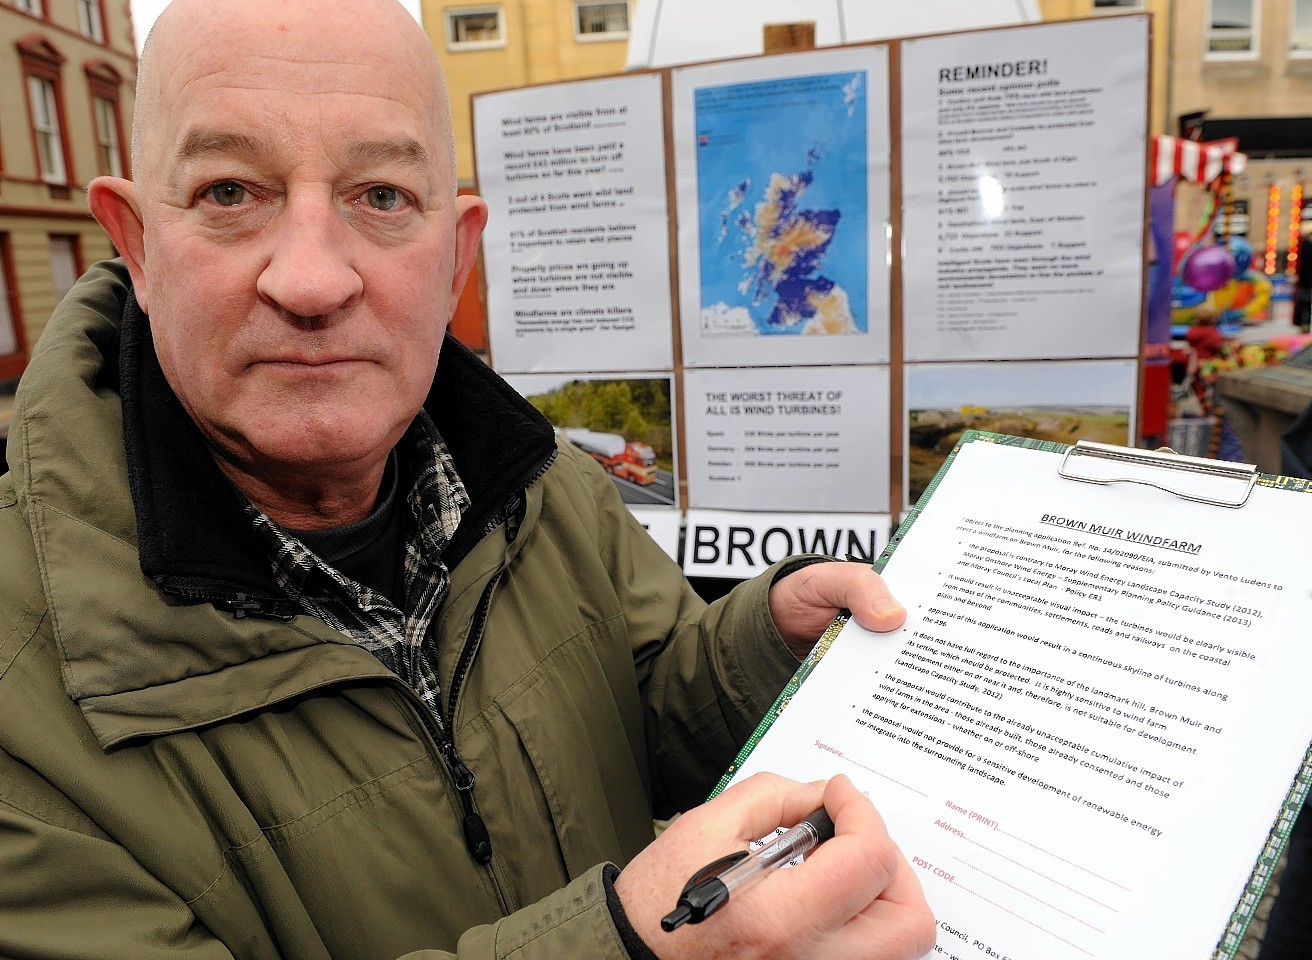 SNP members of local authority facing a backlash from protesters